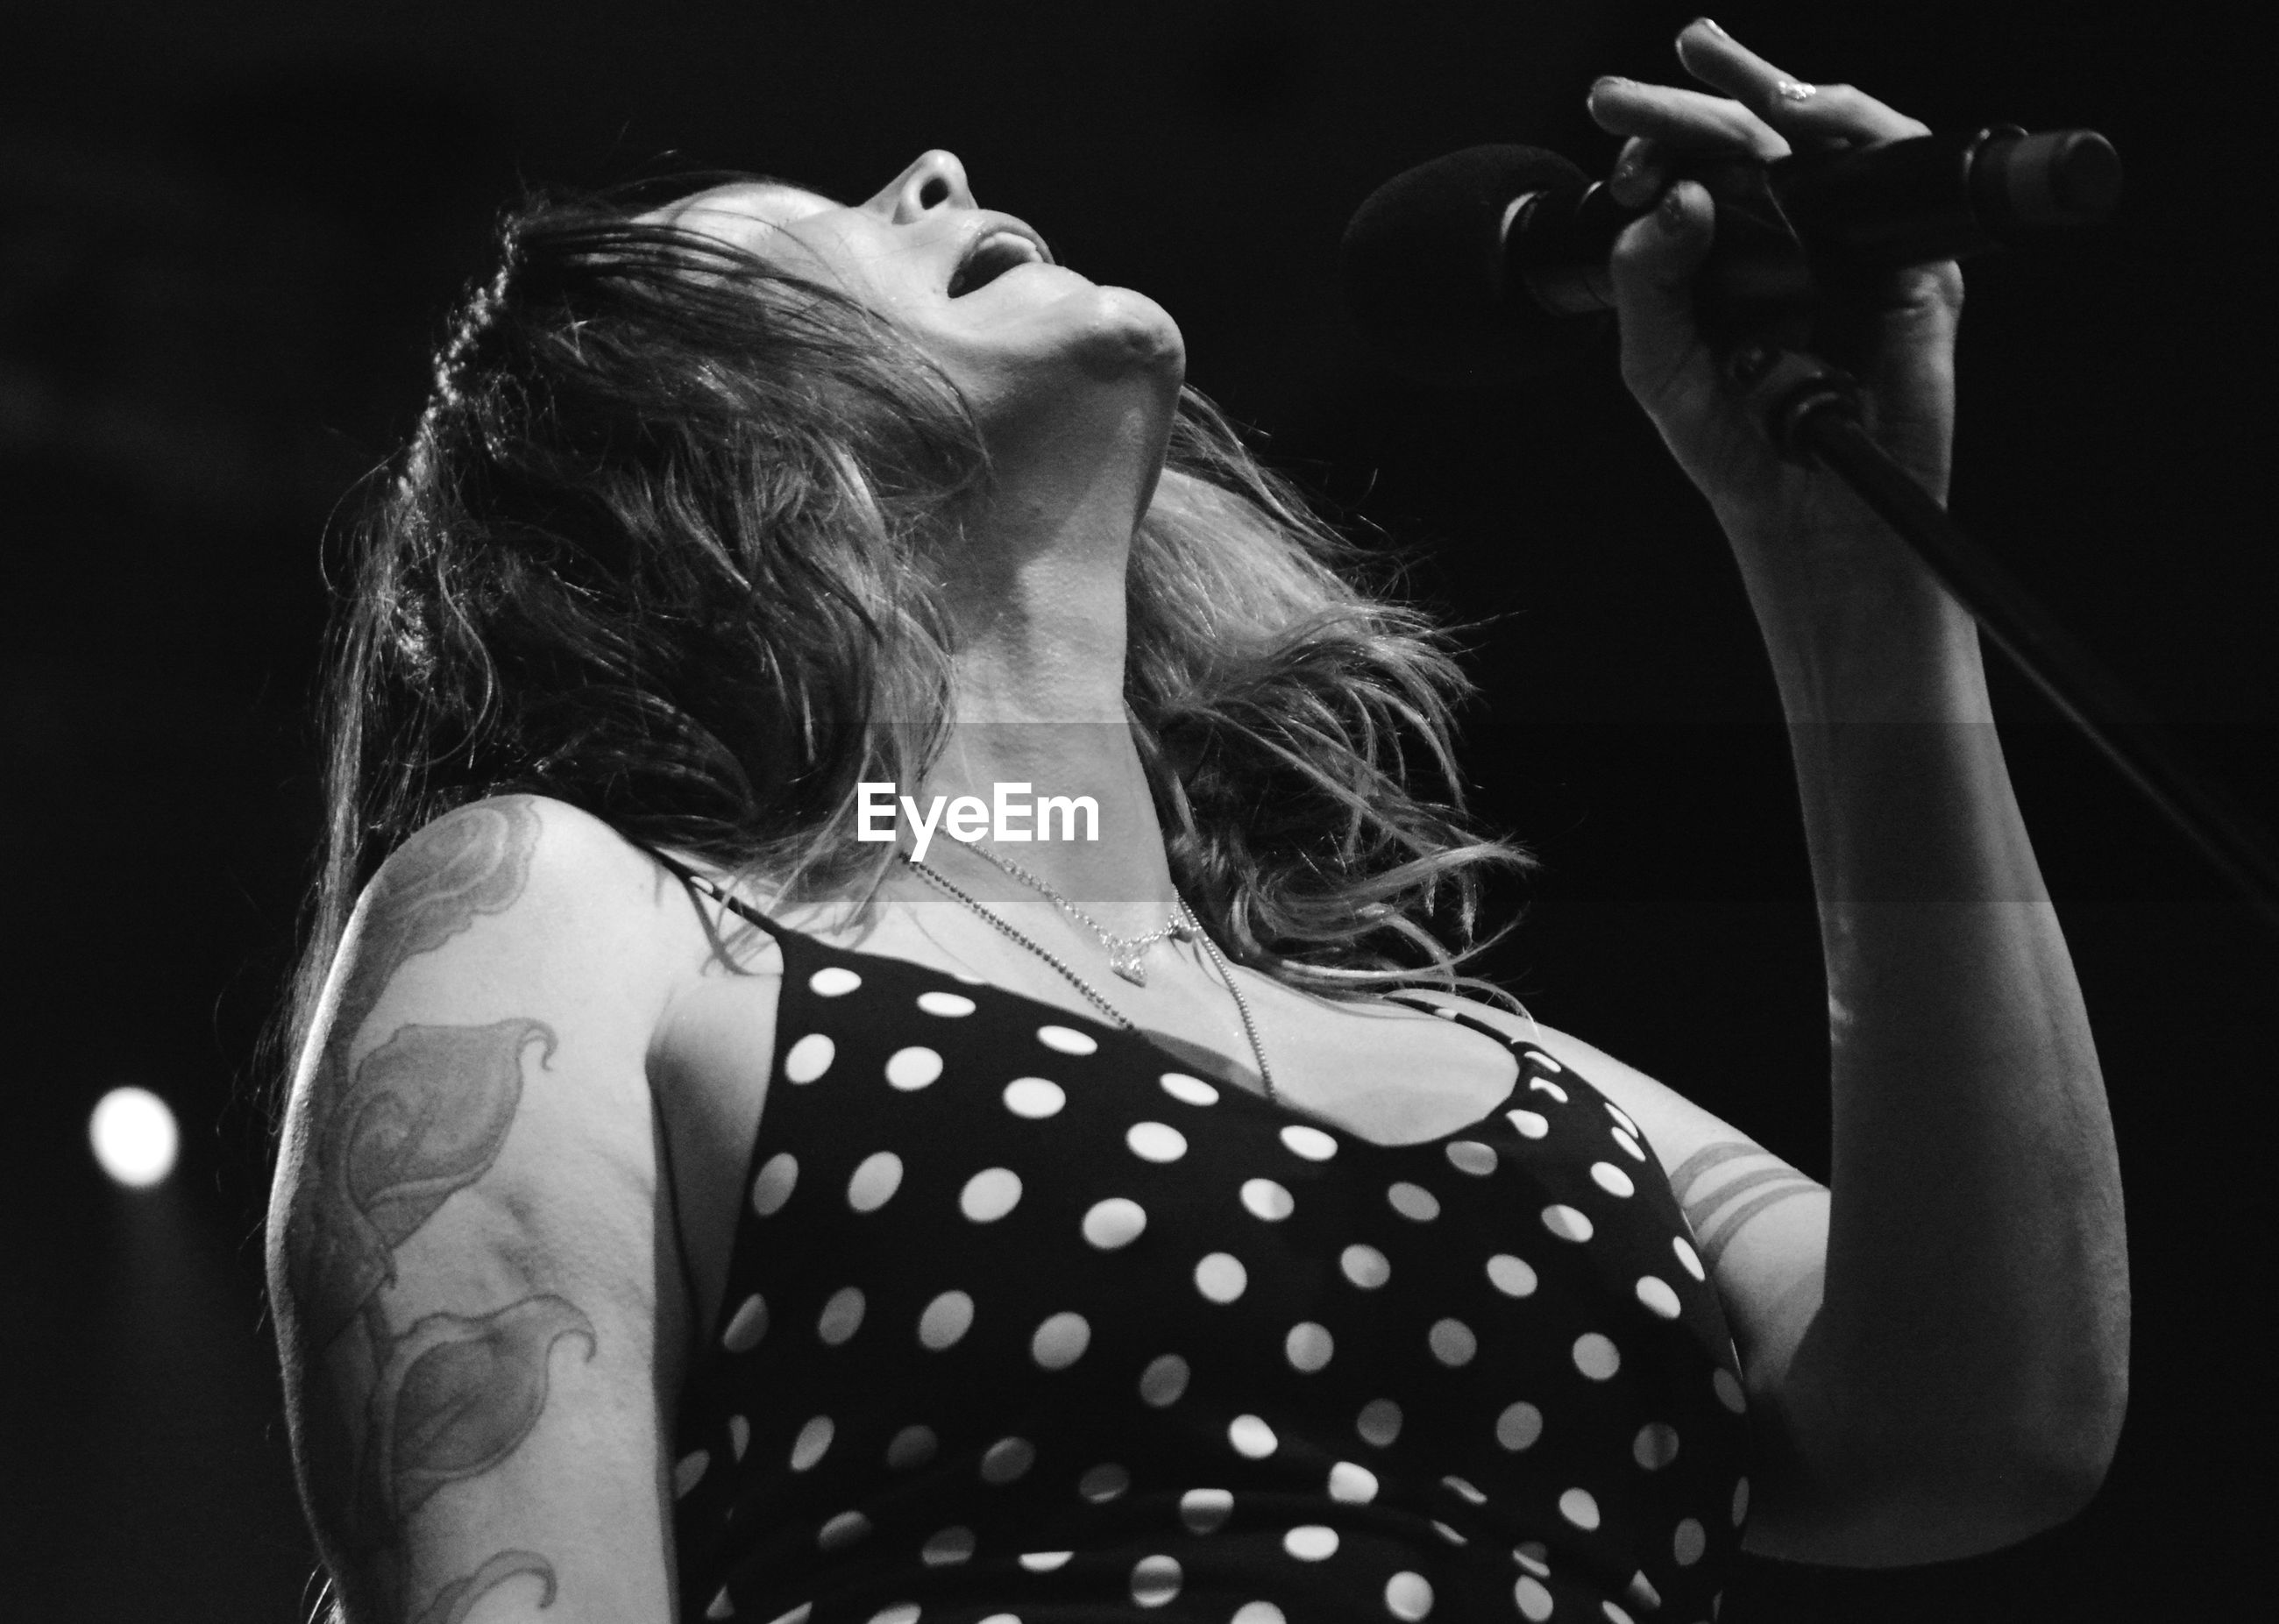 Low angle view of woman singing in concert